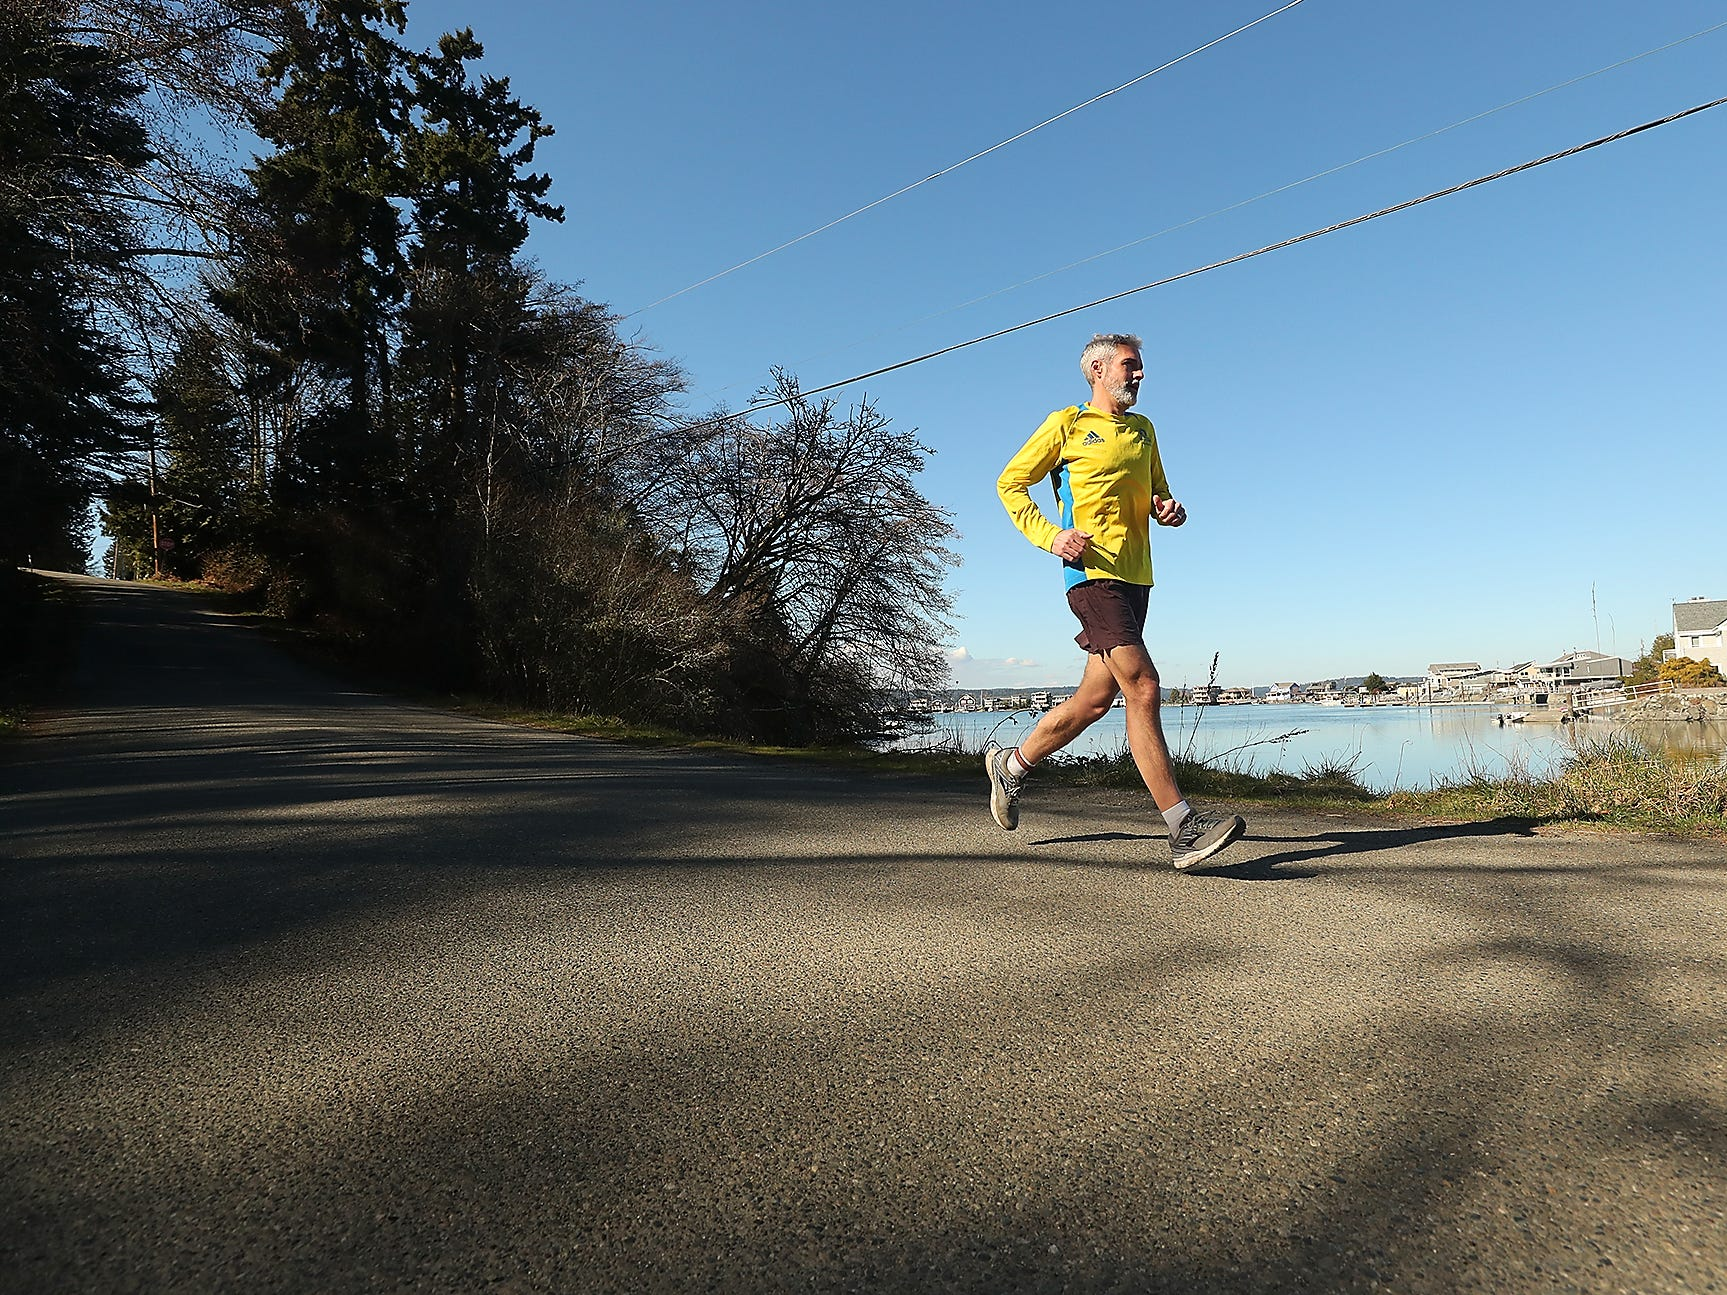 Peter Vosshall runs down Bainbridge Island's Point Monroe Drive on Friday, March 1, 2019. Vosshall has made it his goal this year to run every street on the island.